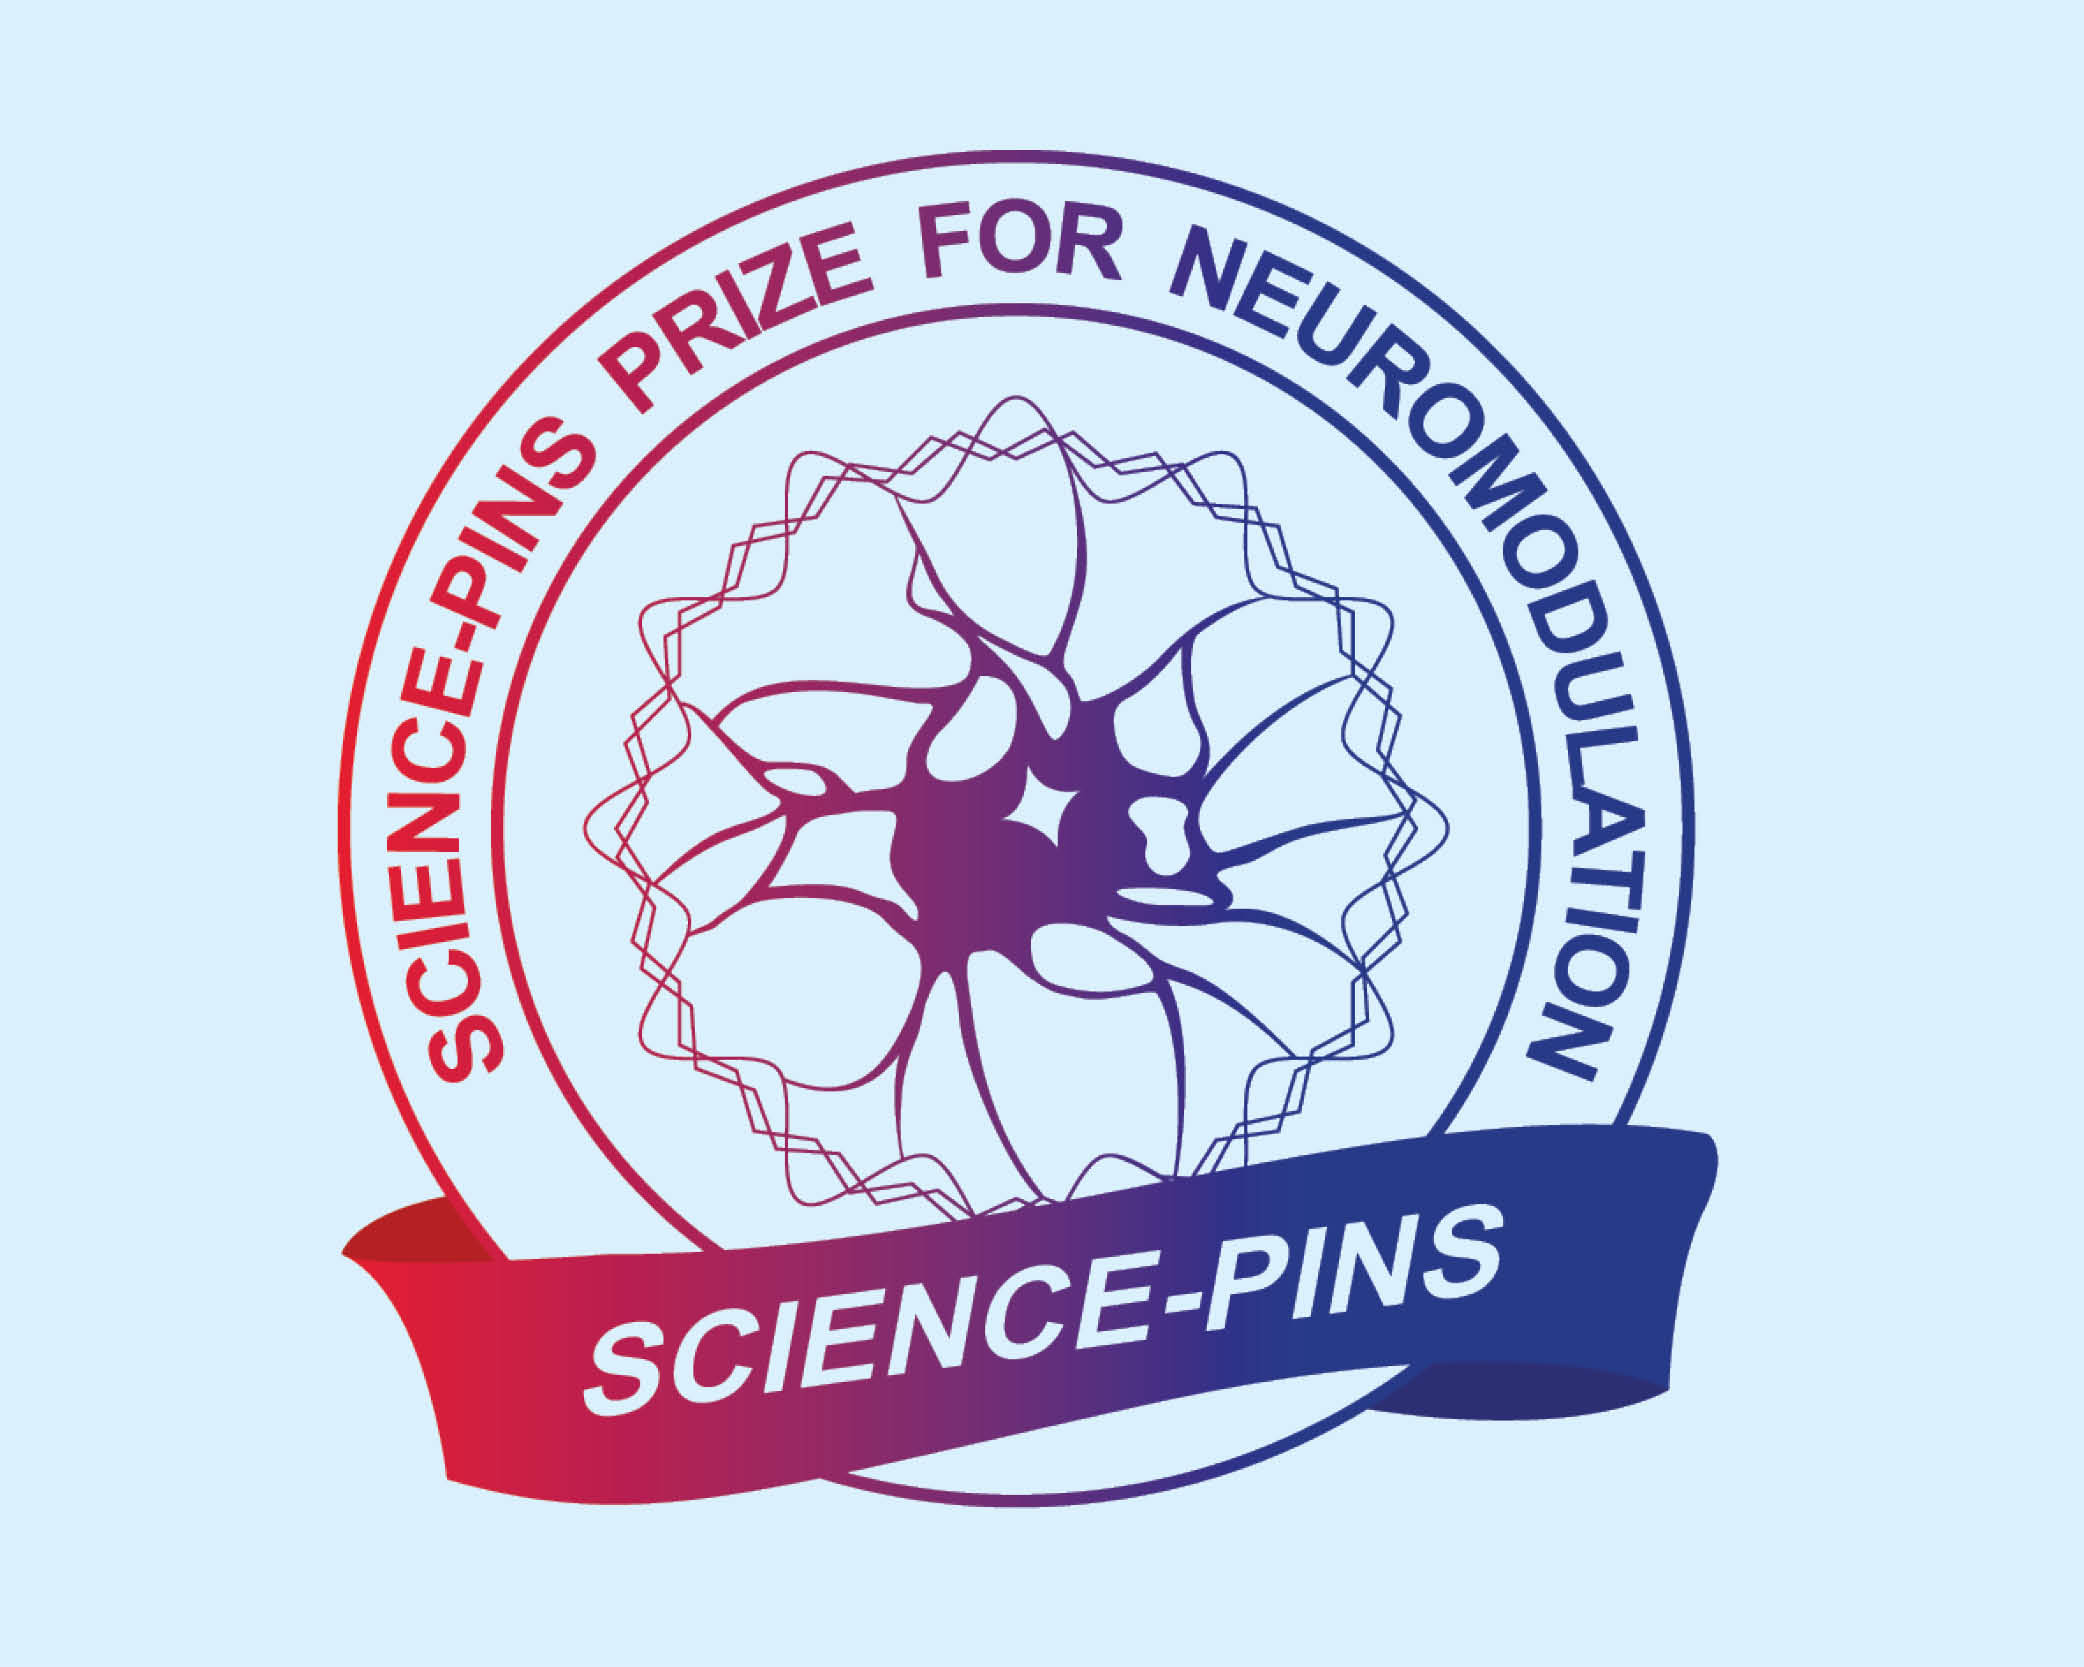 Science & PINS